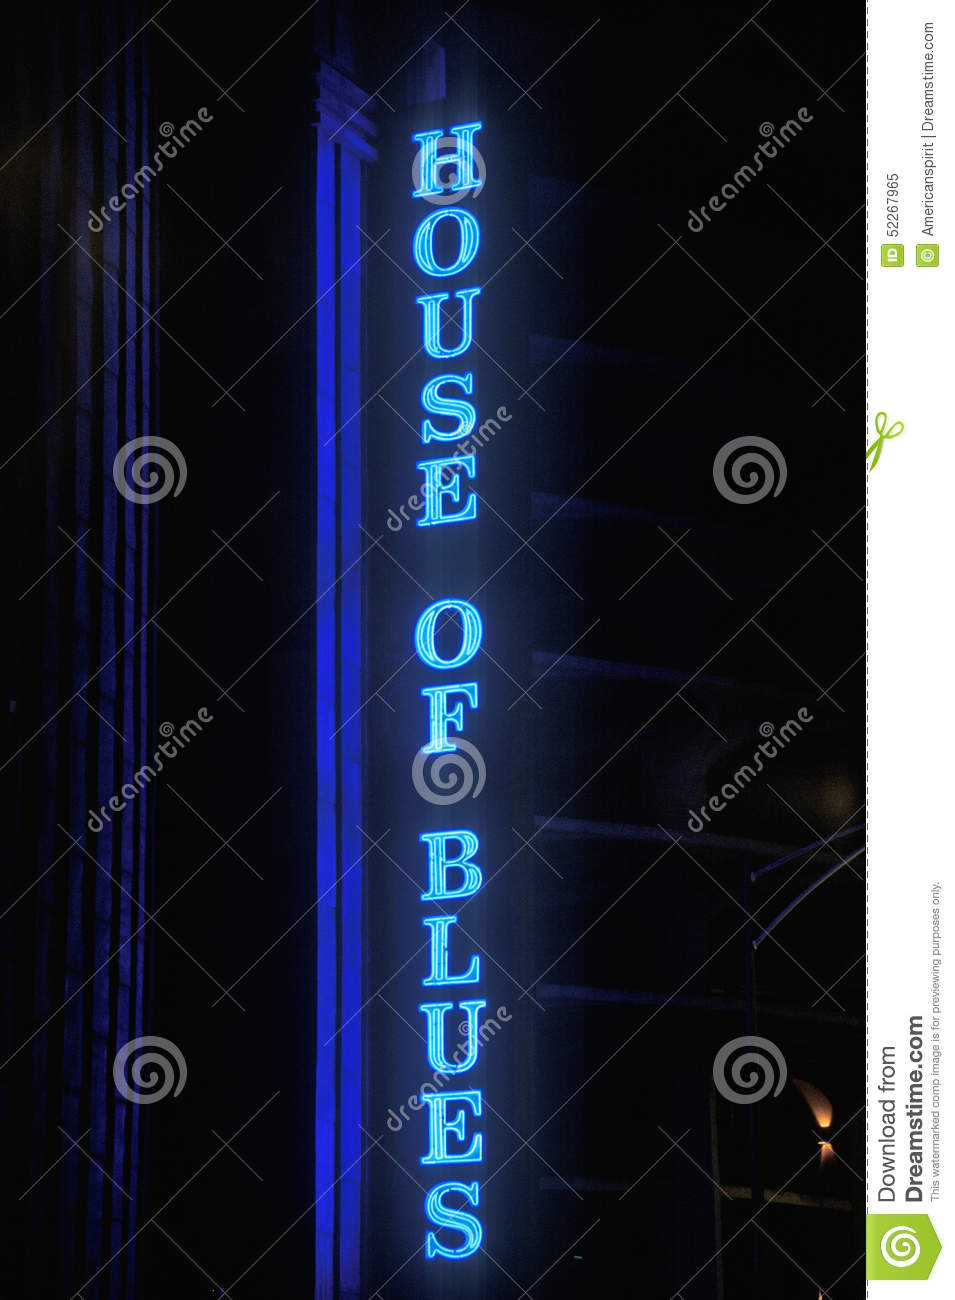 House of Blues Neon Sign, Chicago, Illinois